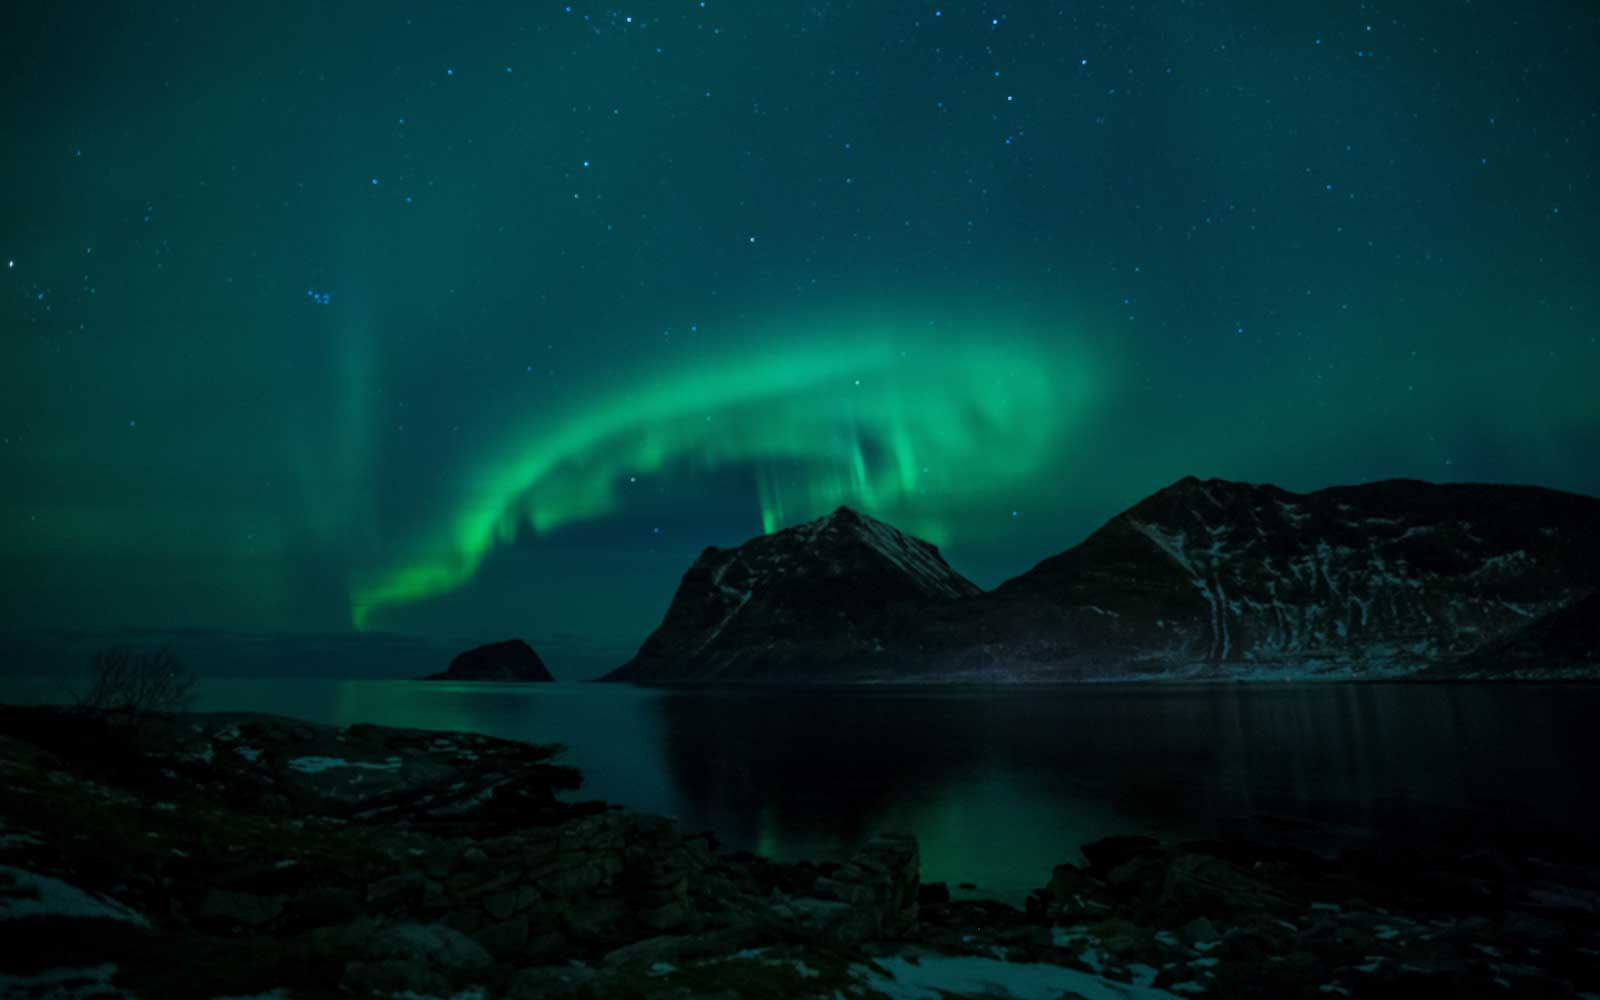 Northern Lights are pictured on March 9, 2018, in Utakleiv, northern Norway, Lofoten islands, within the Arctic Circle.